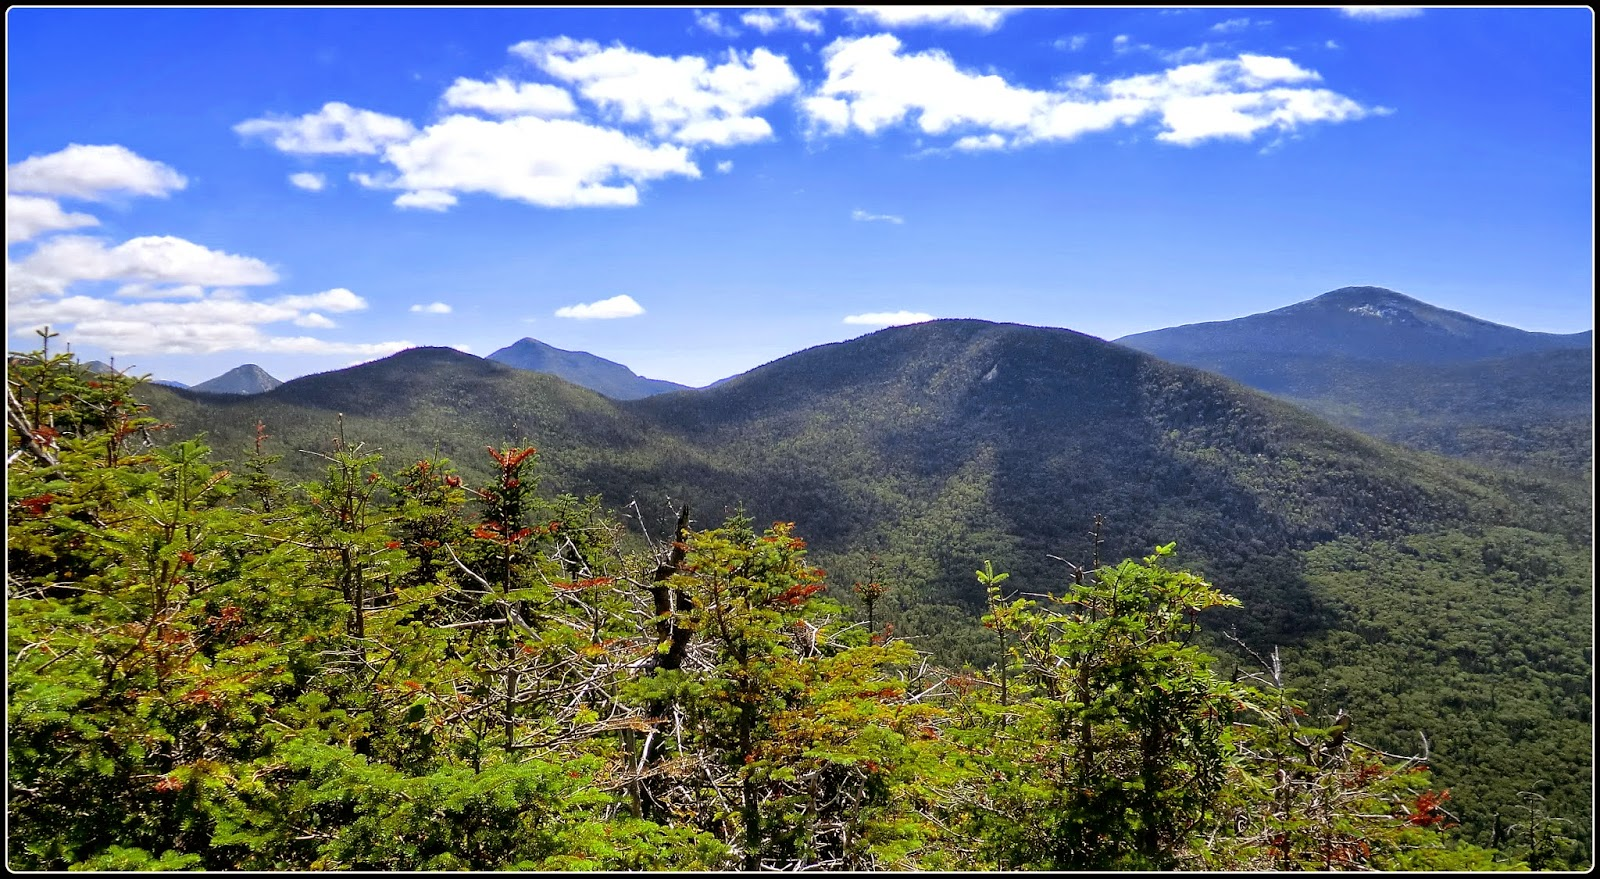 1HappyHiker: Hiking in the High Peaks Region of the Adirondacks